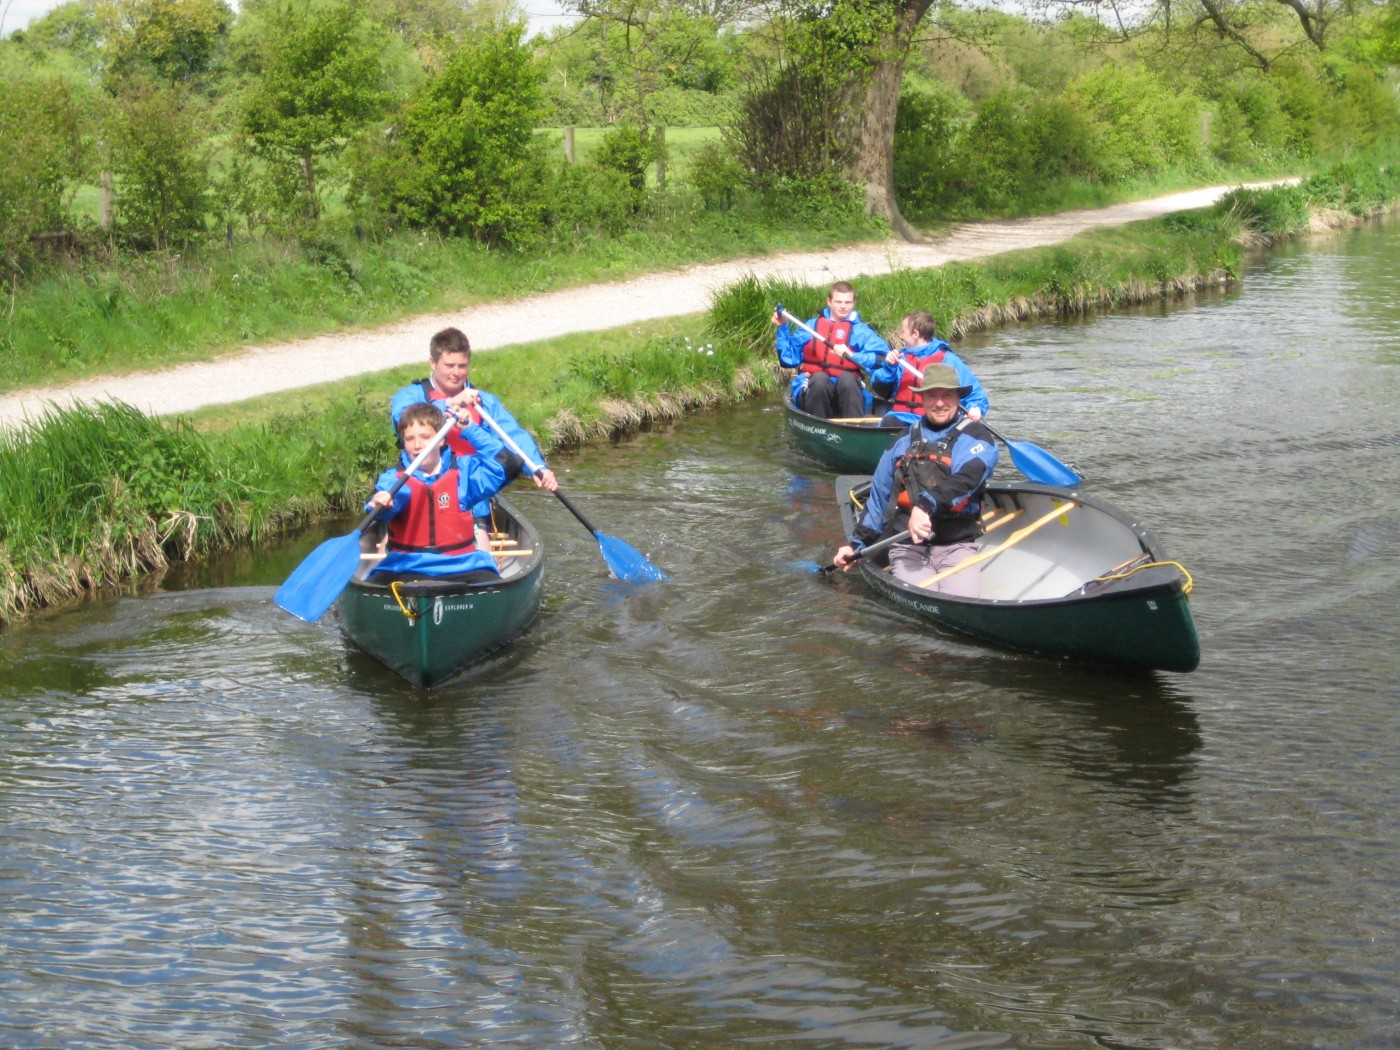 Canoeing at Chichester Canal